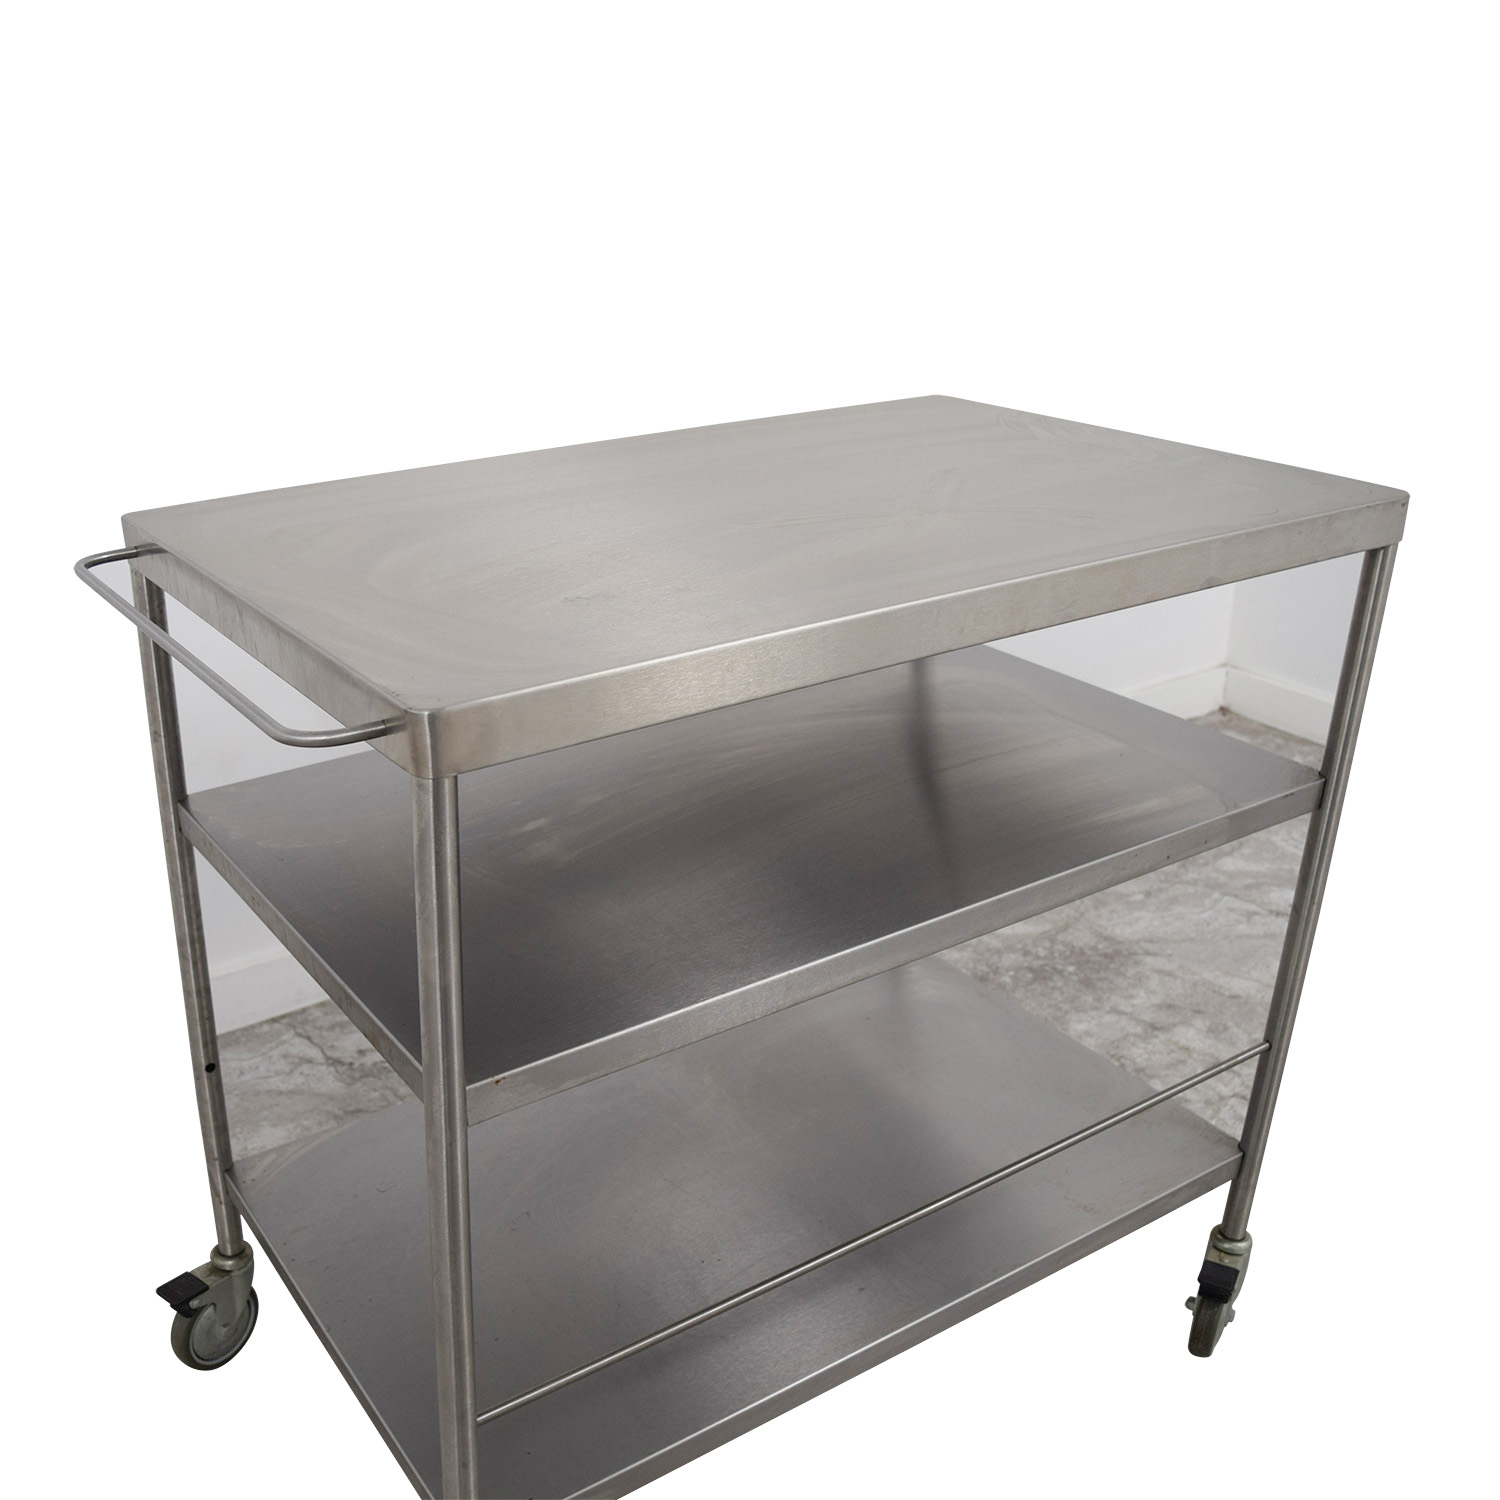 Stainless Steel Utility Cart Stainless Steel